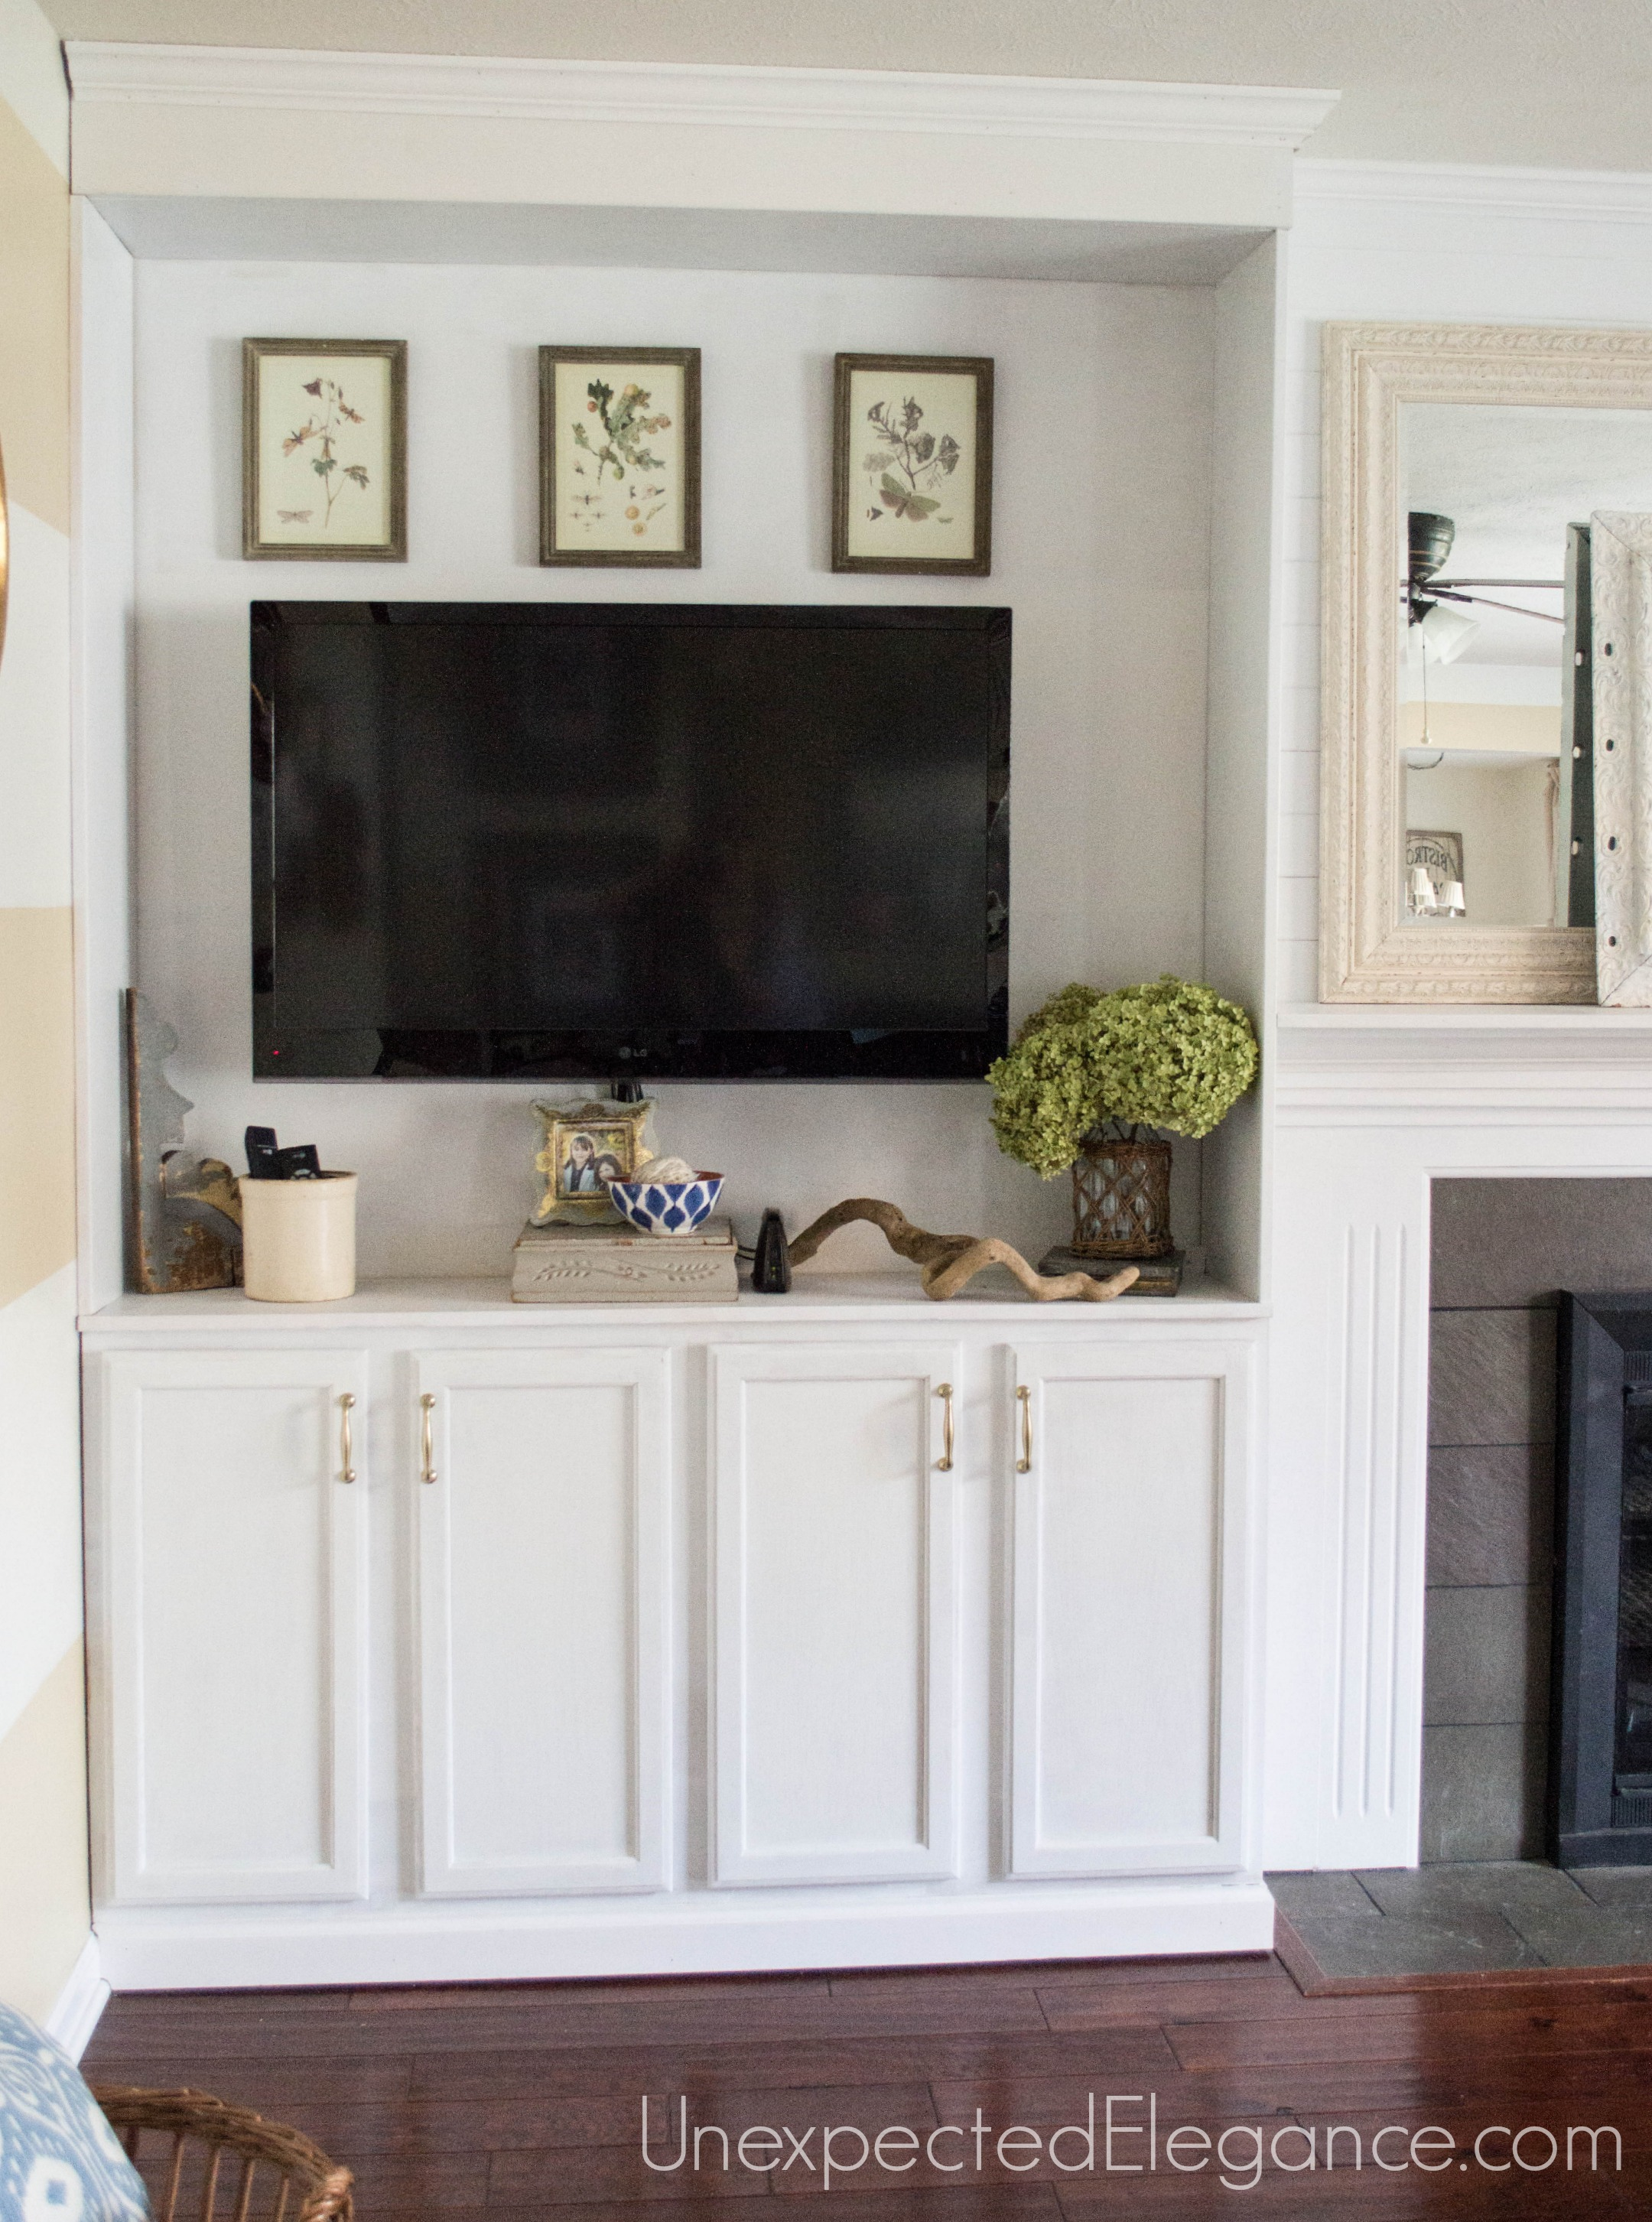 Built In Cabinets Beside Fireplace My Big Finish Diy Fireplace Built Ins Unexpected Elegance